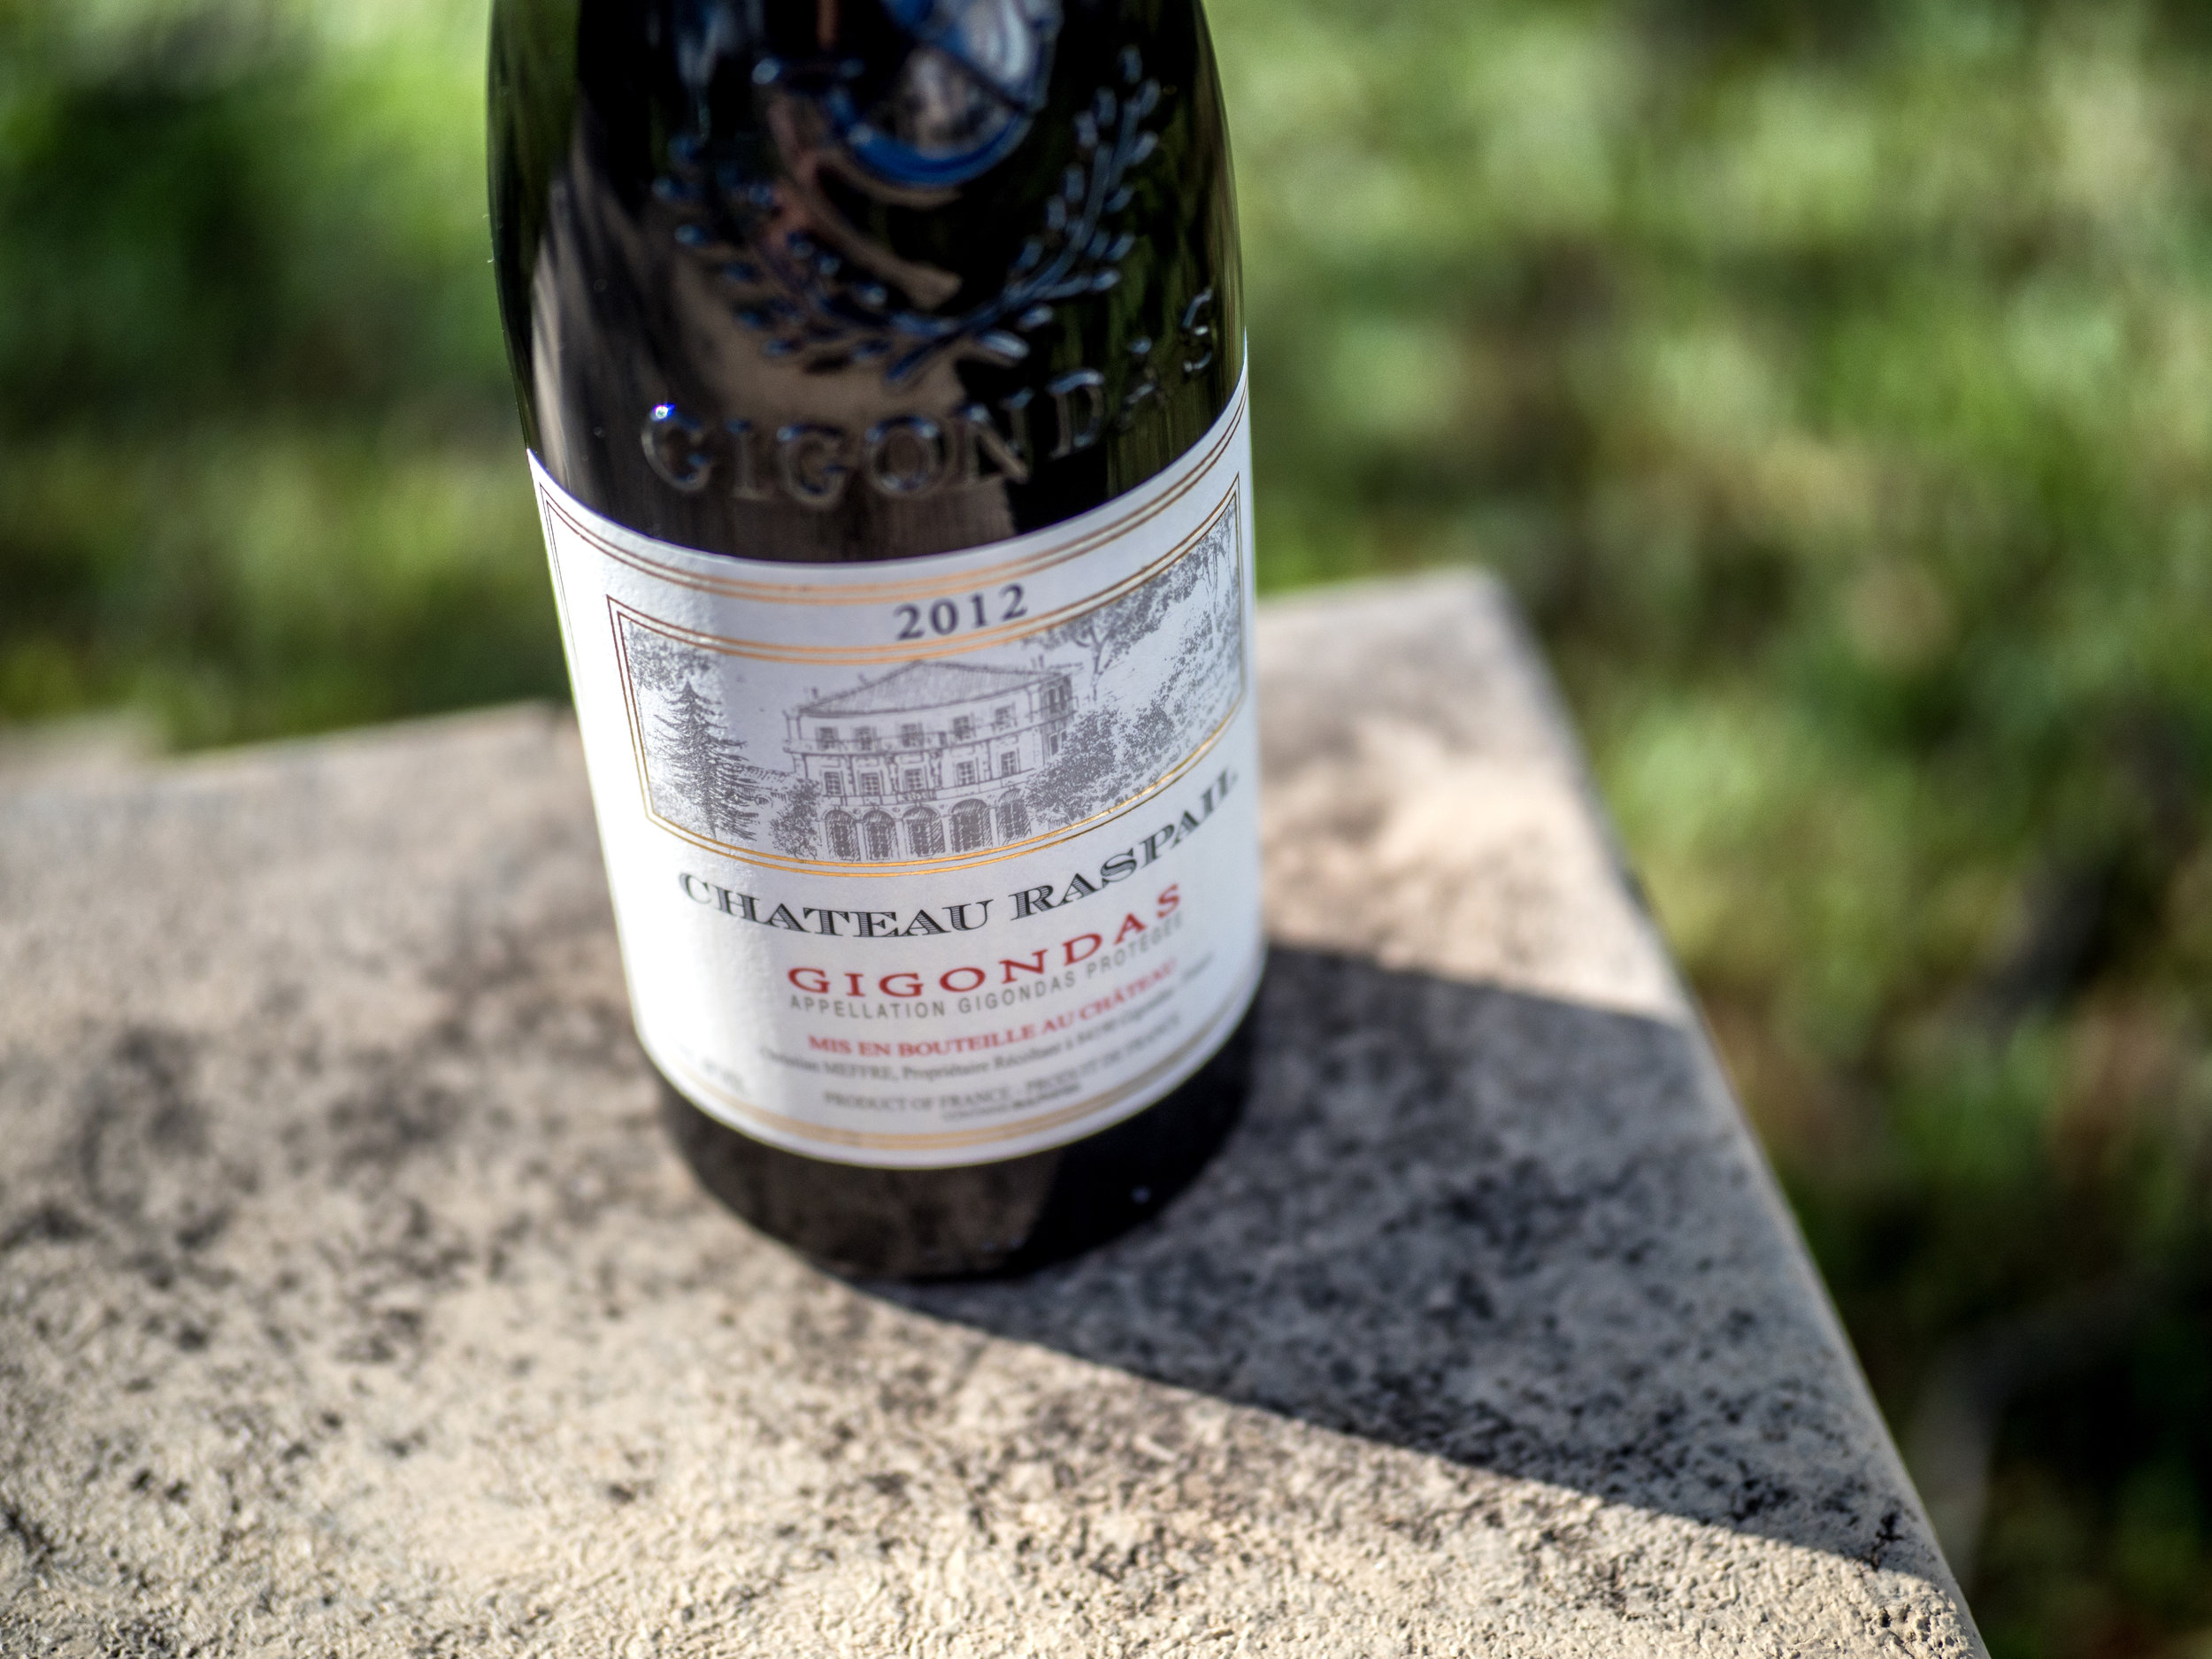 At around $21, a great value wine from Costco, while supplies last...